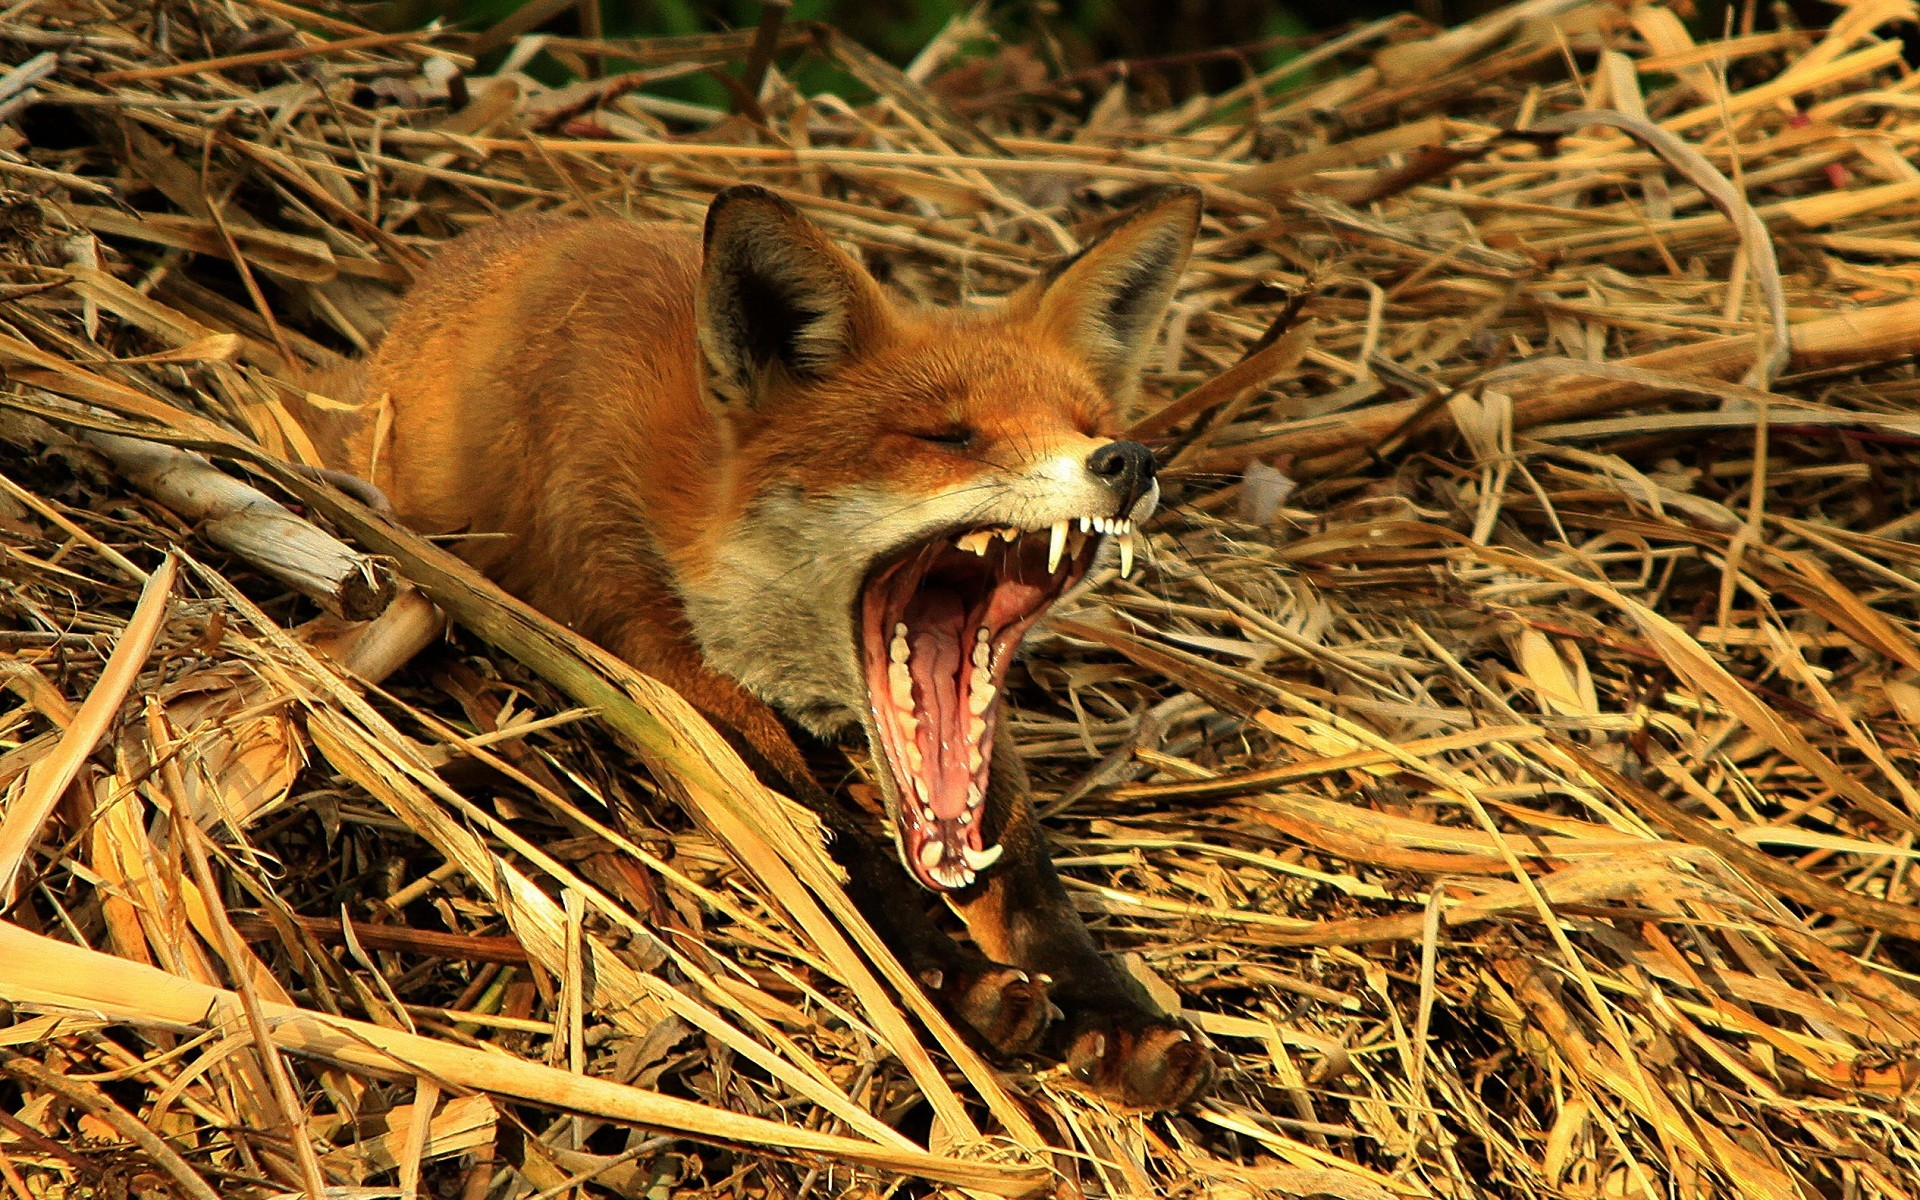 Animals wildlife yawns foxes HD Wallpaper